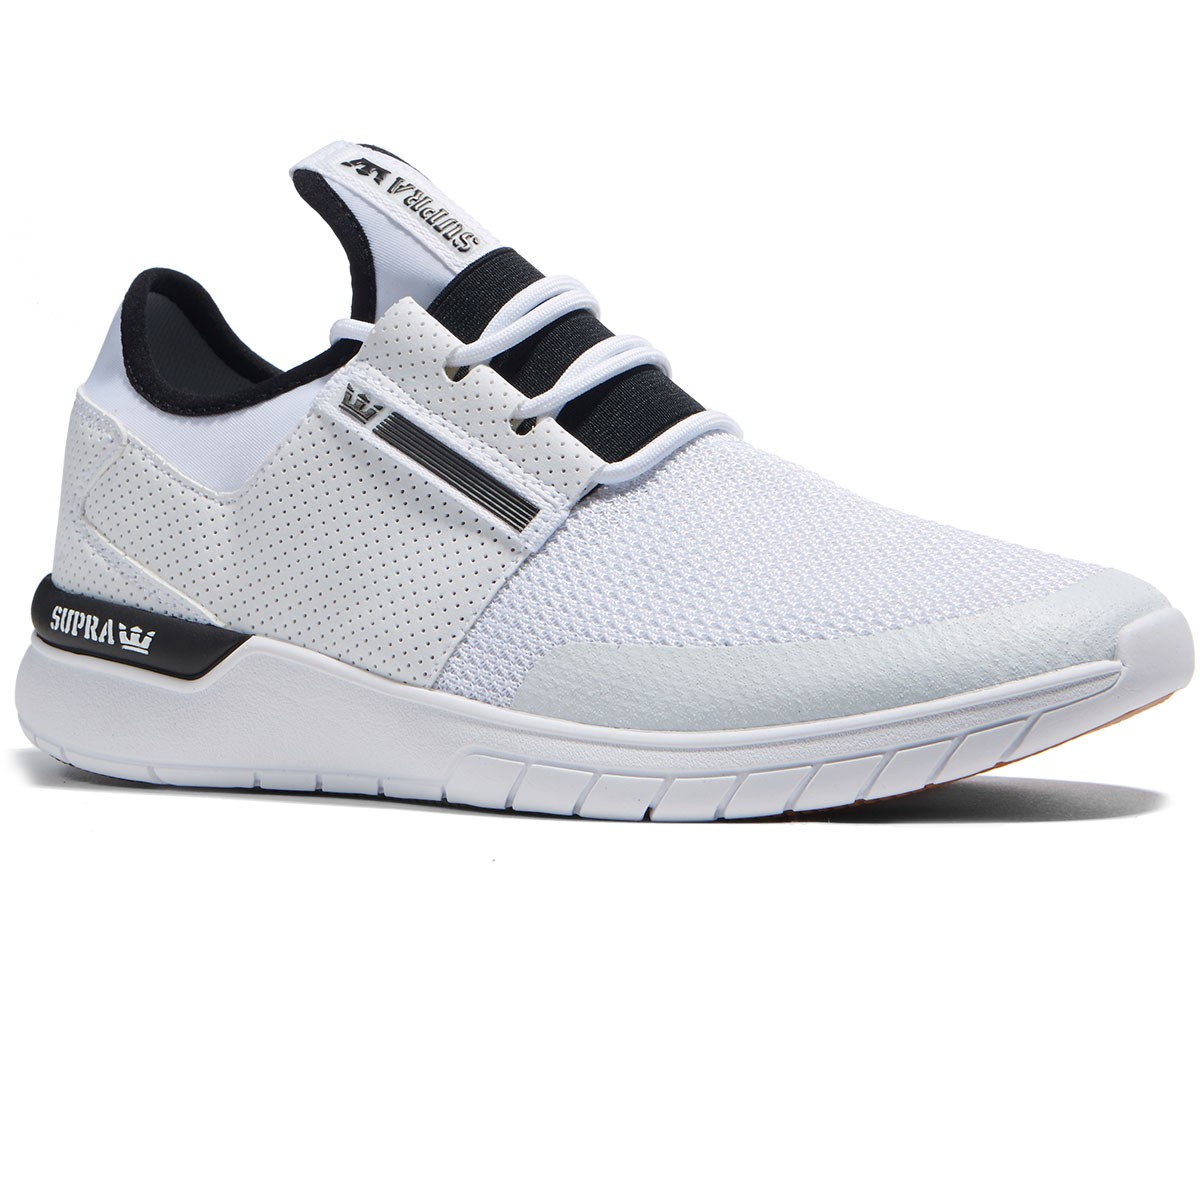 ee2a3f277689 Supra Flow Run Shoes - White White - 8.0